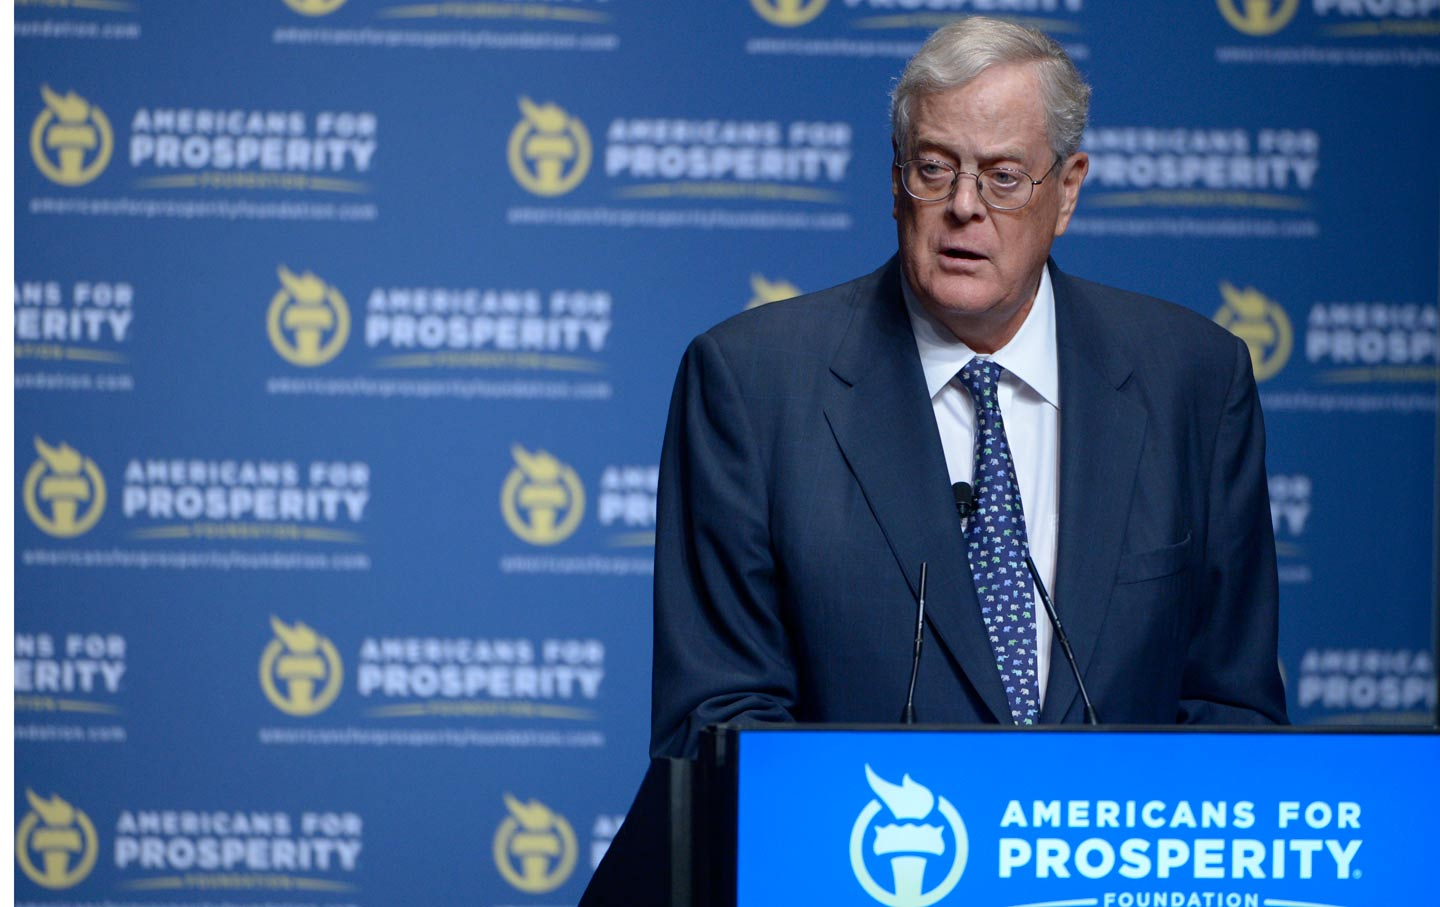 Charles David Koch We Know Who You Are >> David Koch Got What He Paid For The Nation